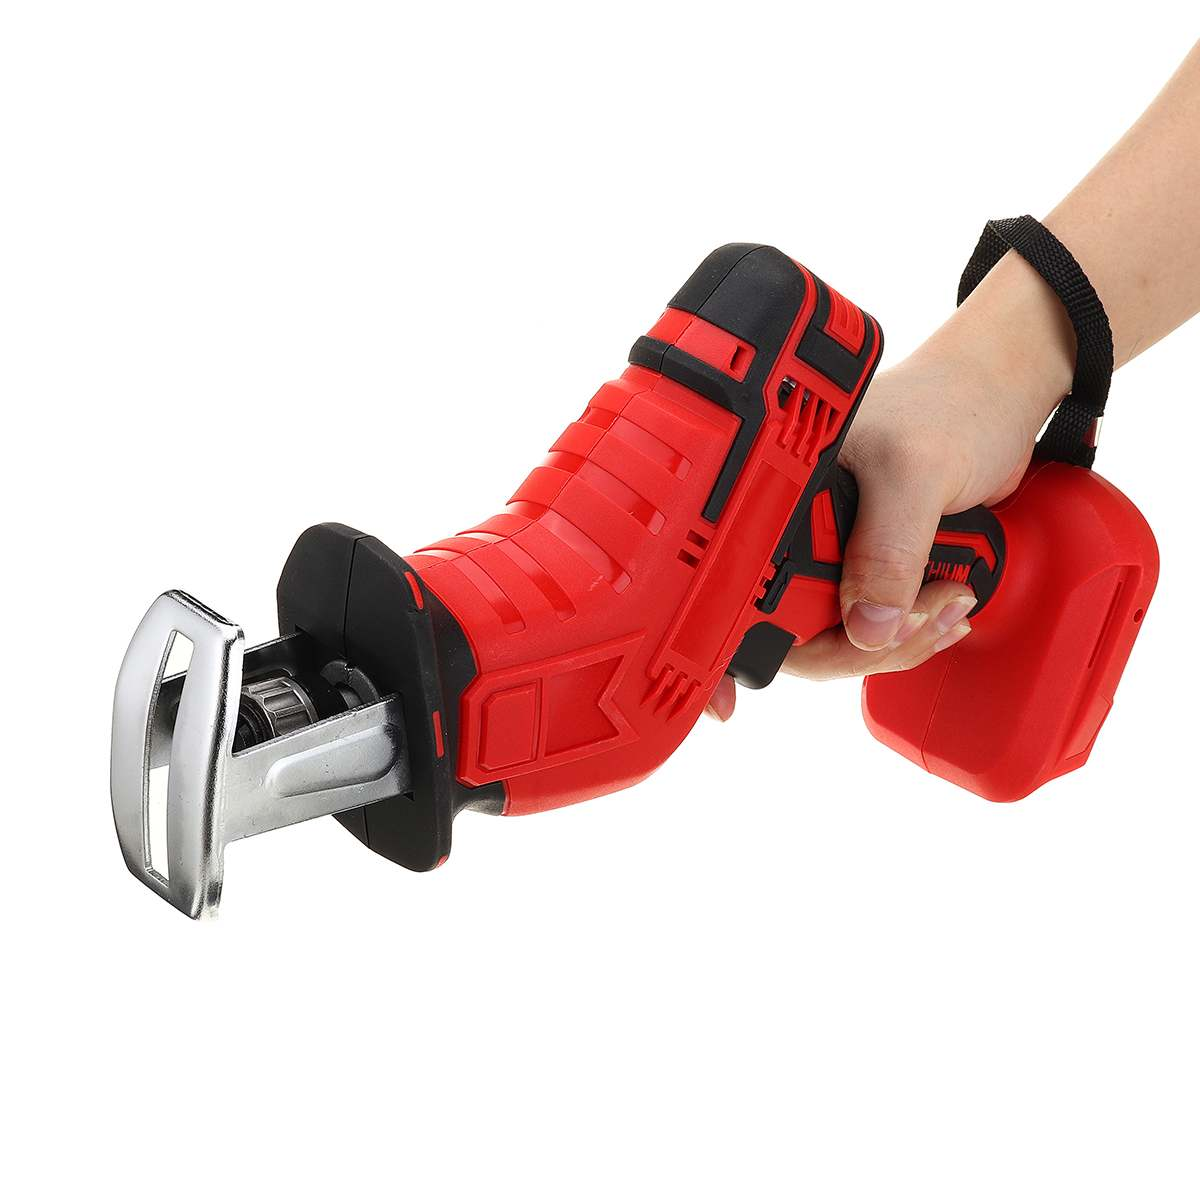 Tool Adjustable Cordless Cutter Speed 18V Woodworking Body Makita Replacement Battery Saw Electric Mini For Saw Reciprocating